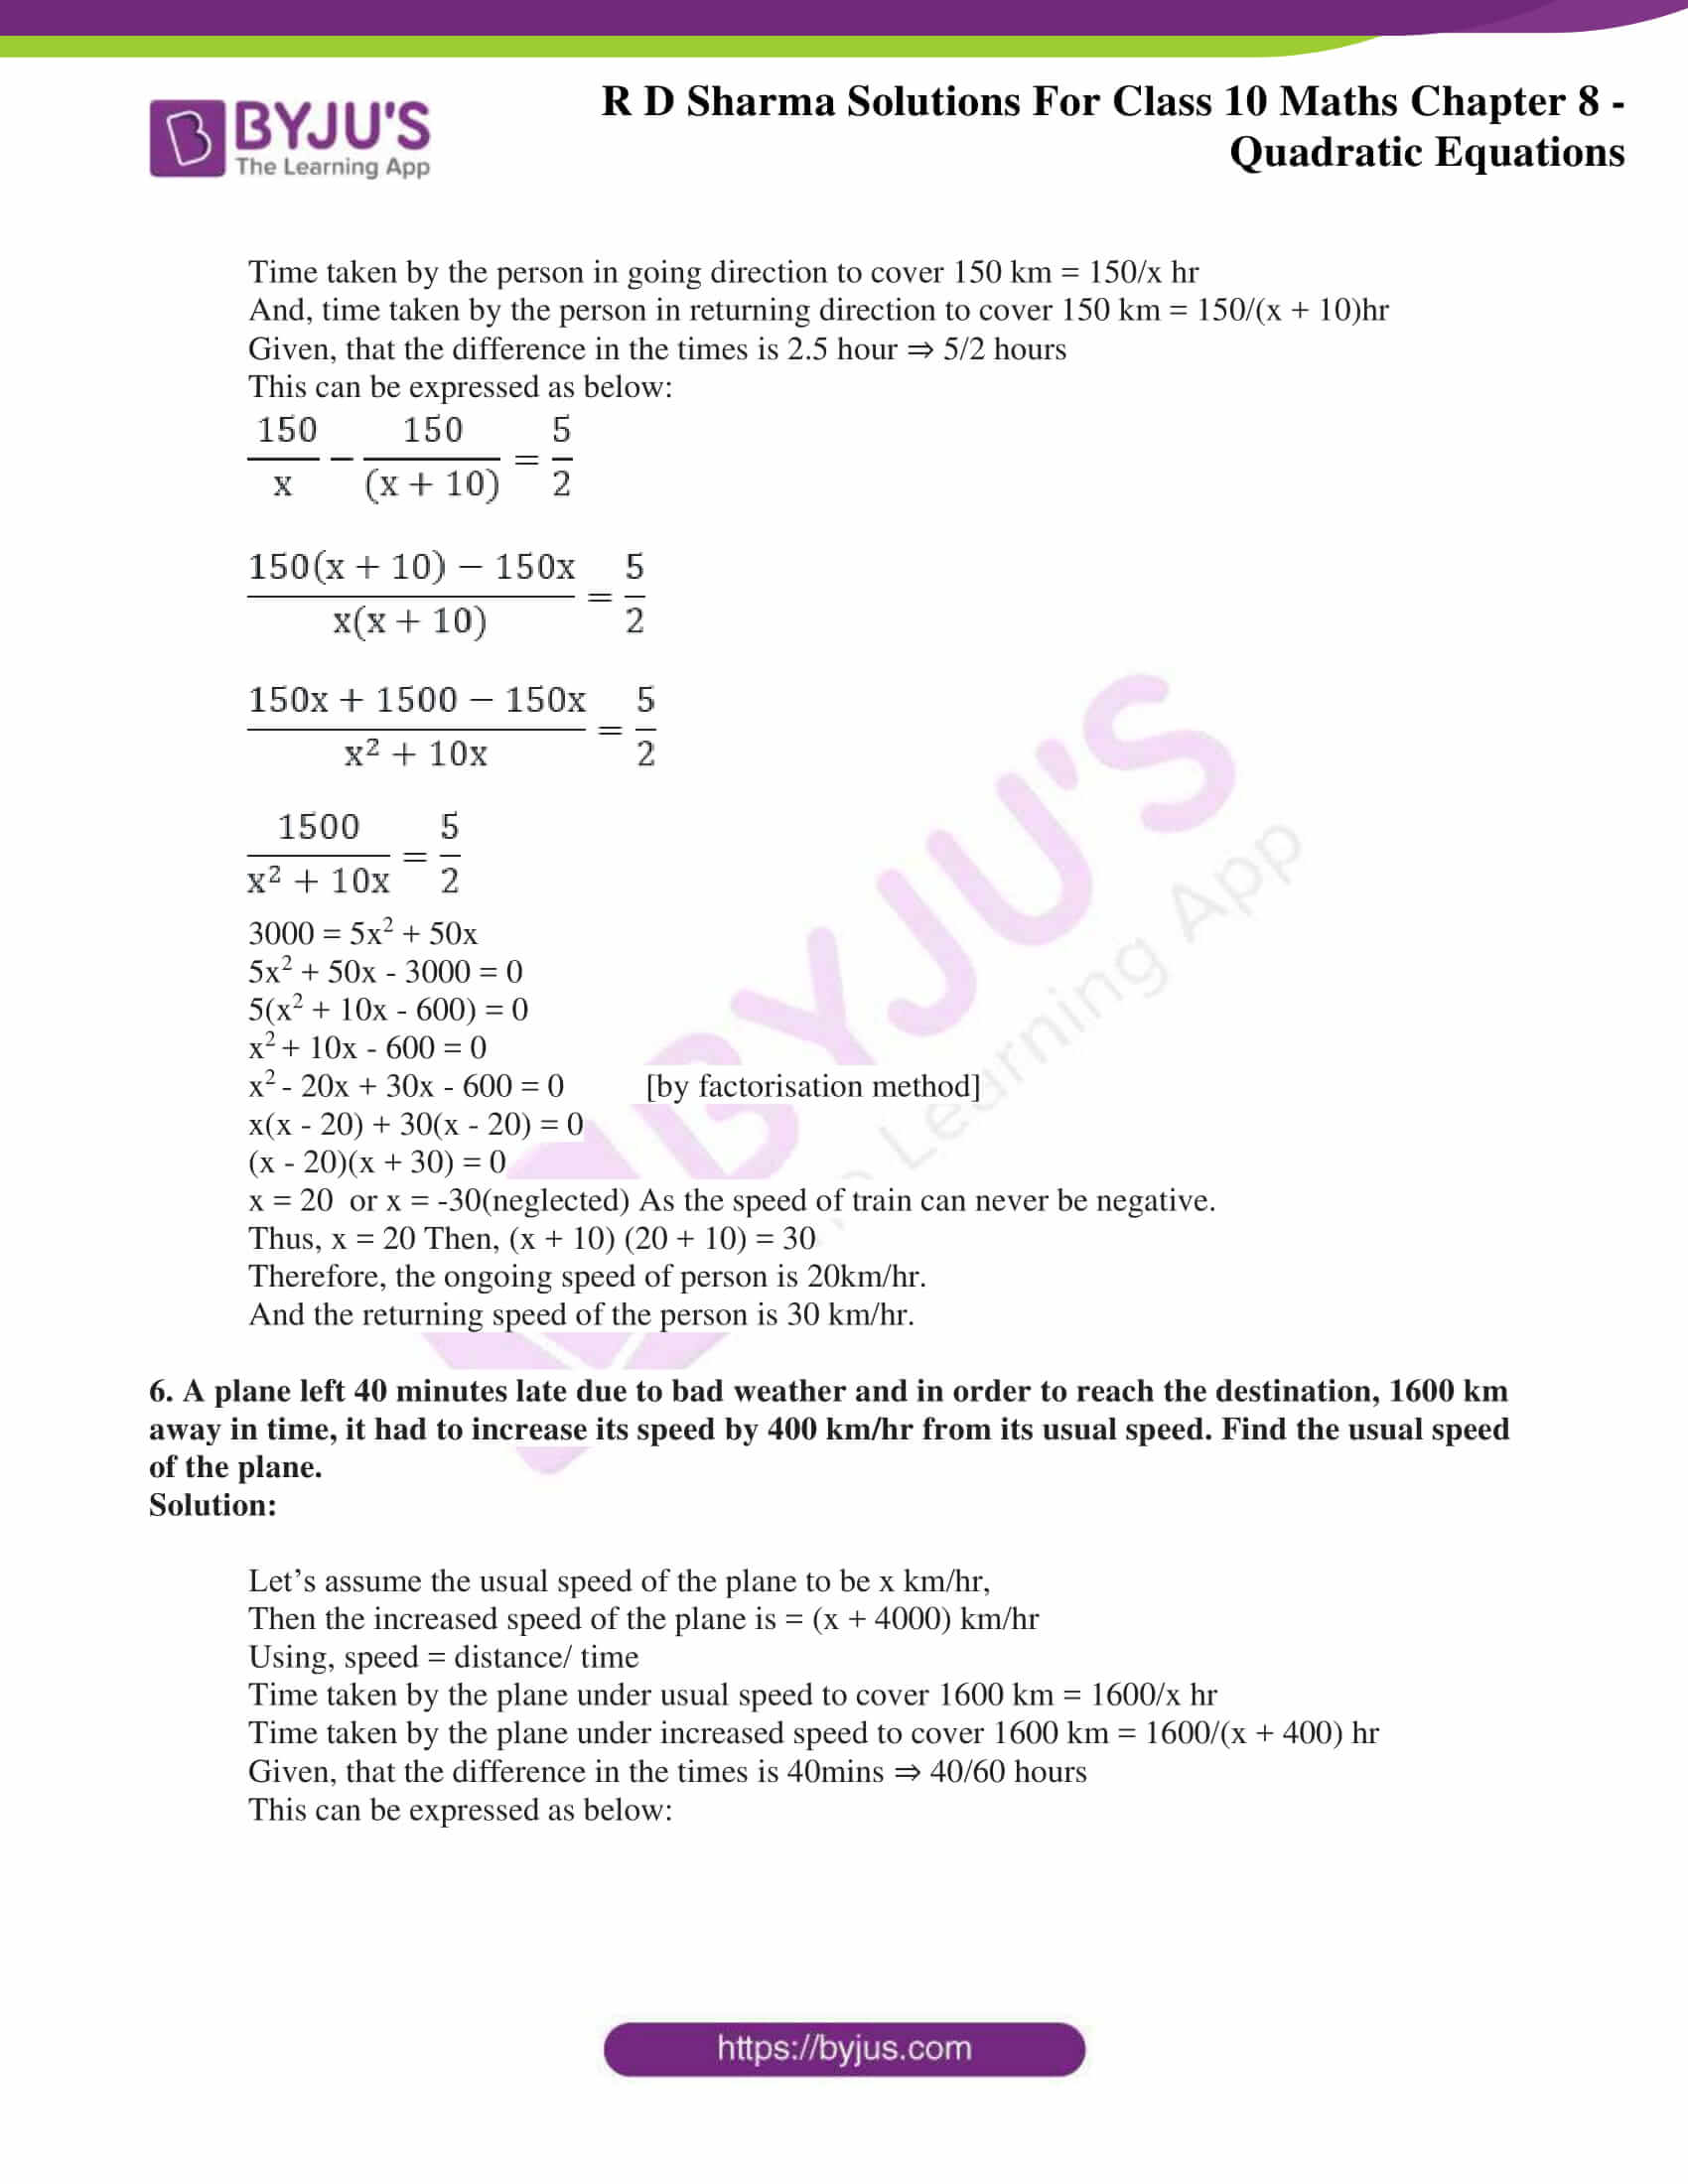 Rd Sharma Solutions For Class 10 Chapter 8 Quadratic